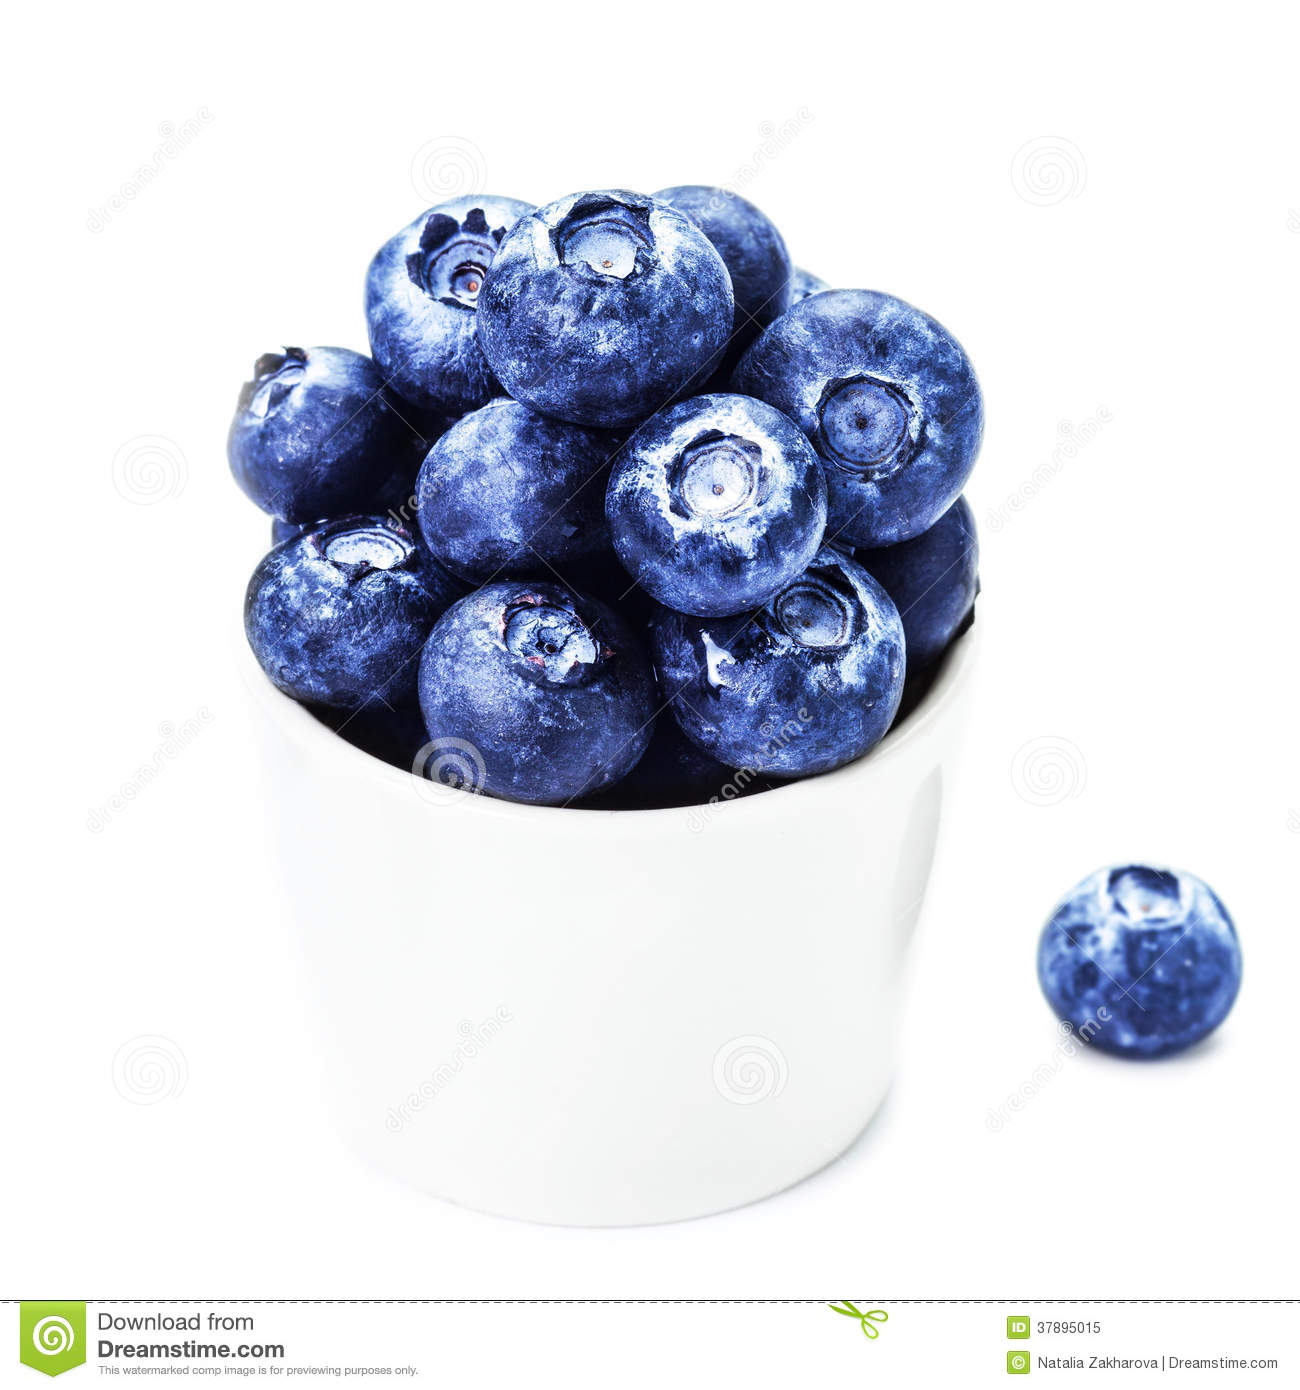 Fresh Blueberries in a bowl isolated on white background close